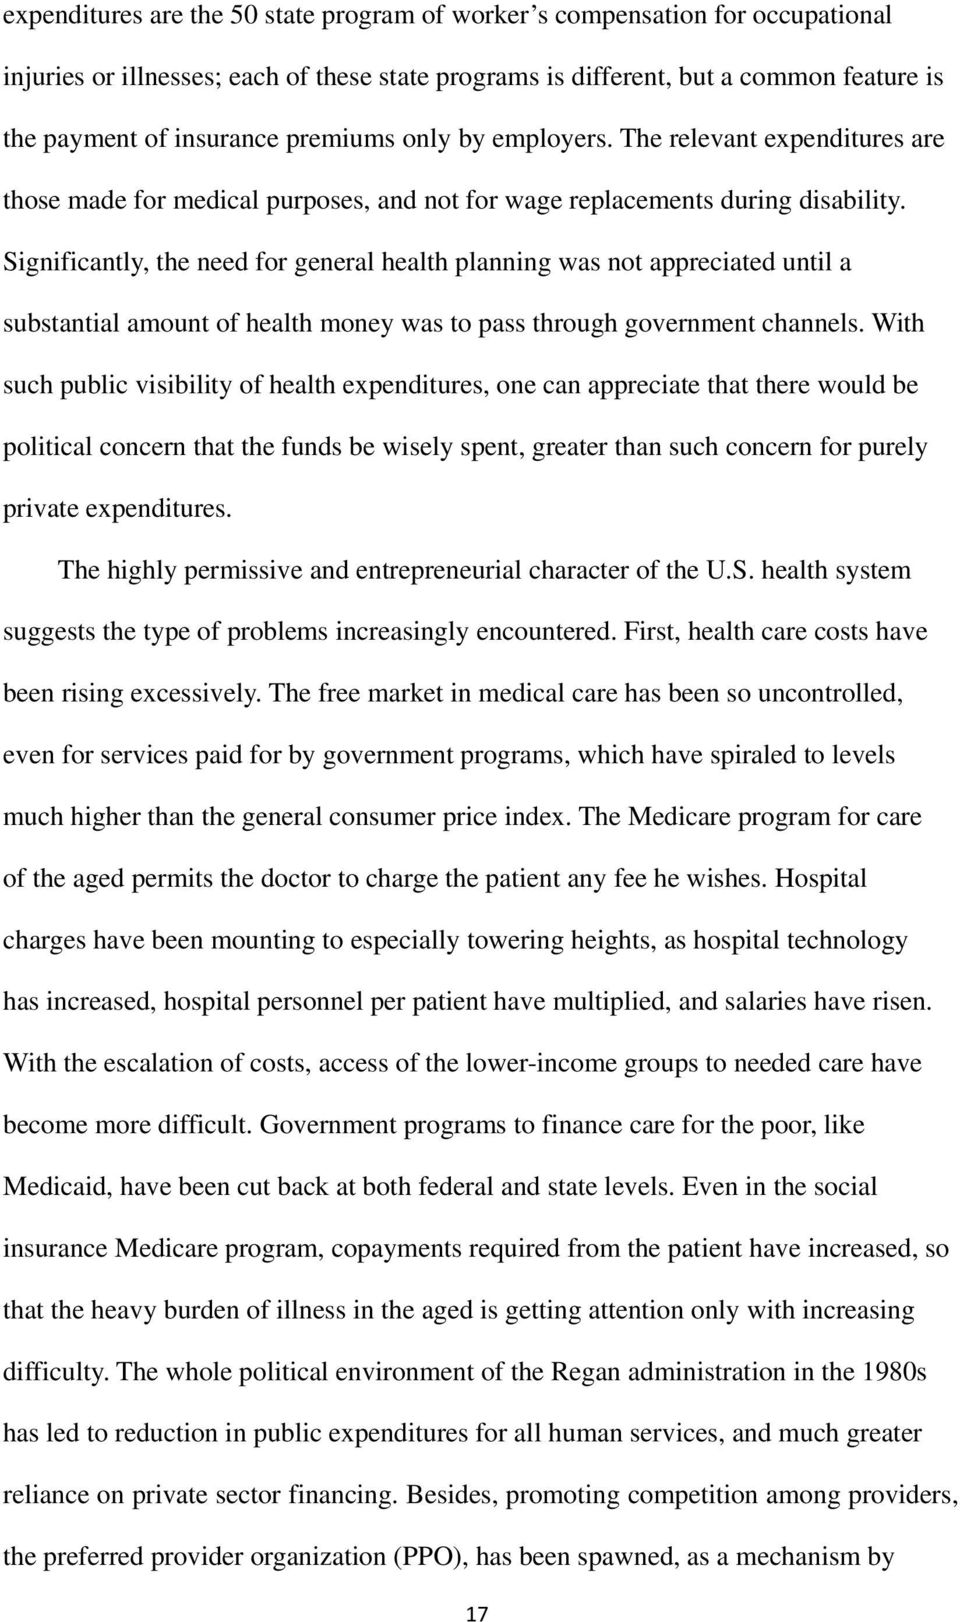 Significantly, the need for general health planning was not appreciated until a substantial amount of health money was to pass through government channels.